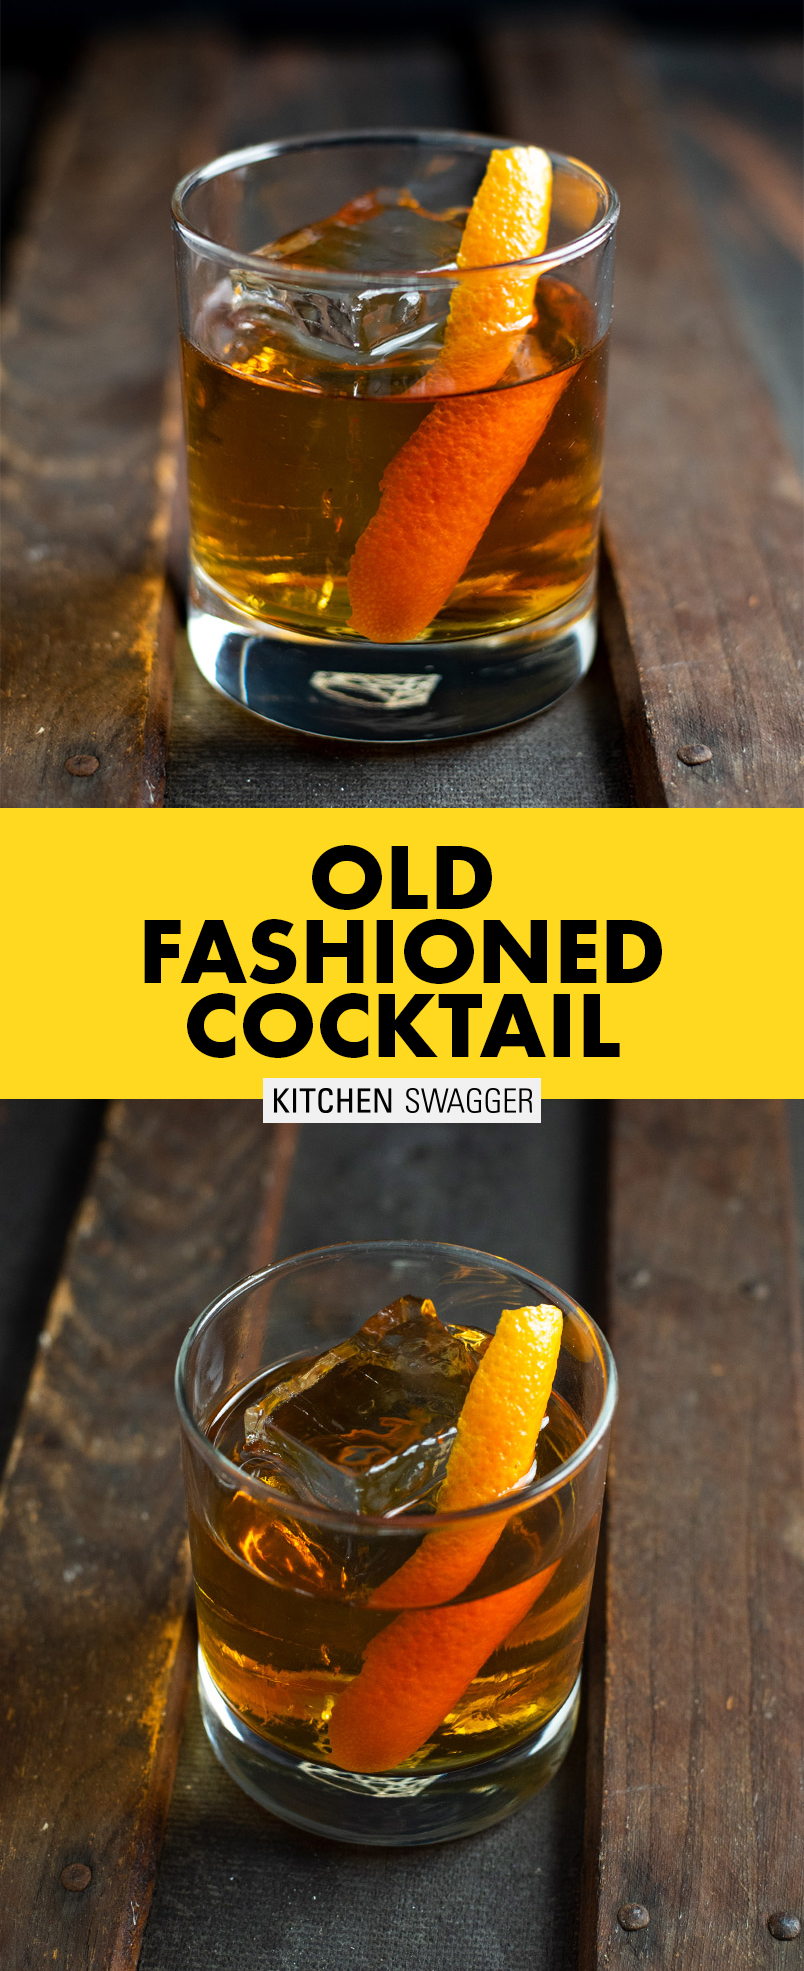 Old Fashioned Cocktail Recipe Recipe Classic Cocktail Recipes Old Fashion Cocktail Recipe Old Fashioned Drink